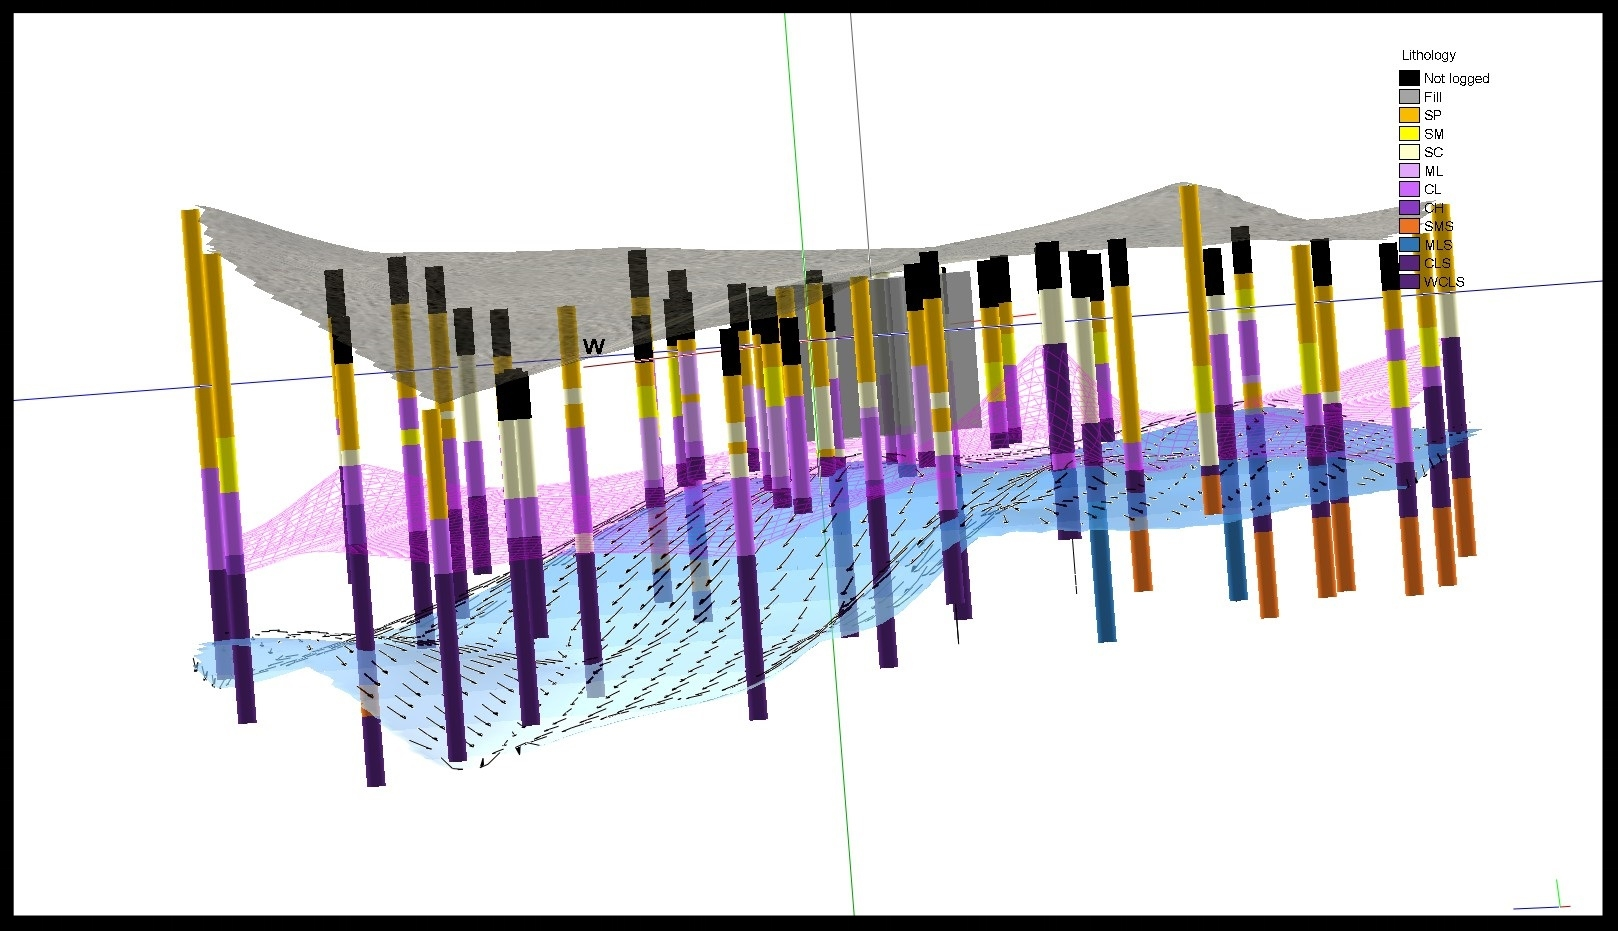 3D Groundwater modeling